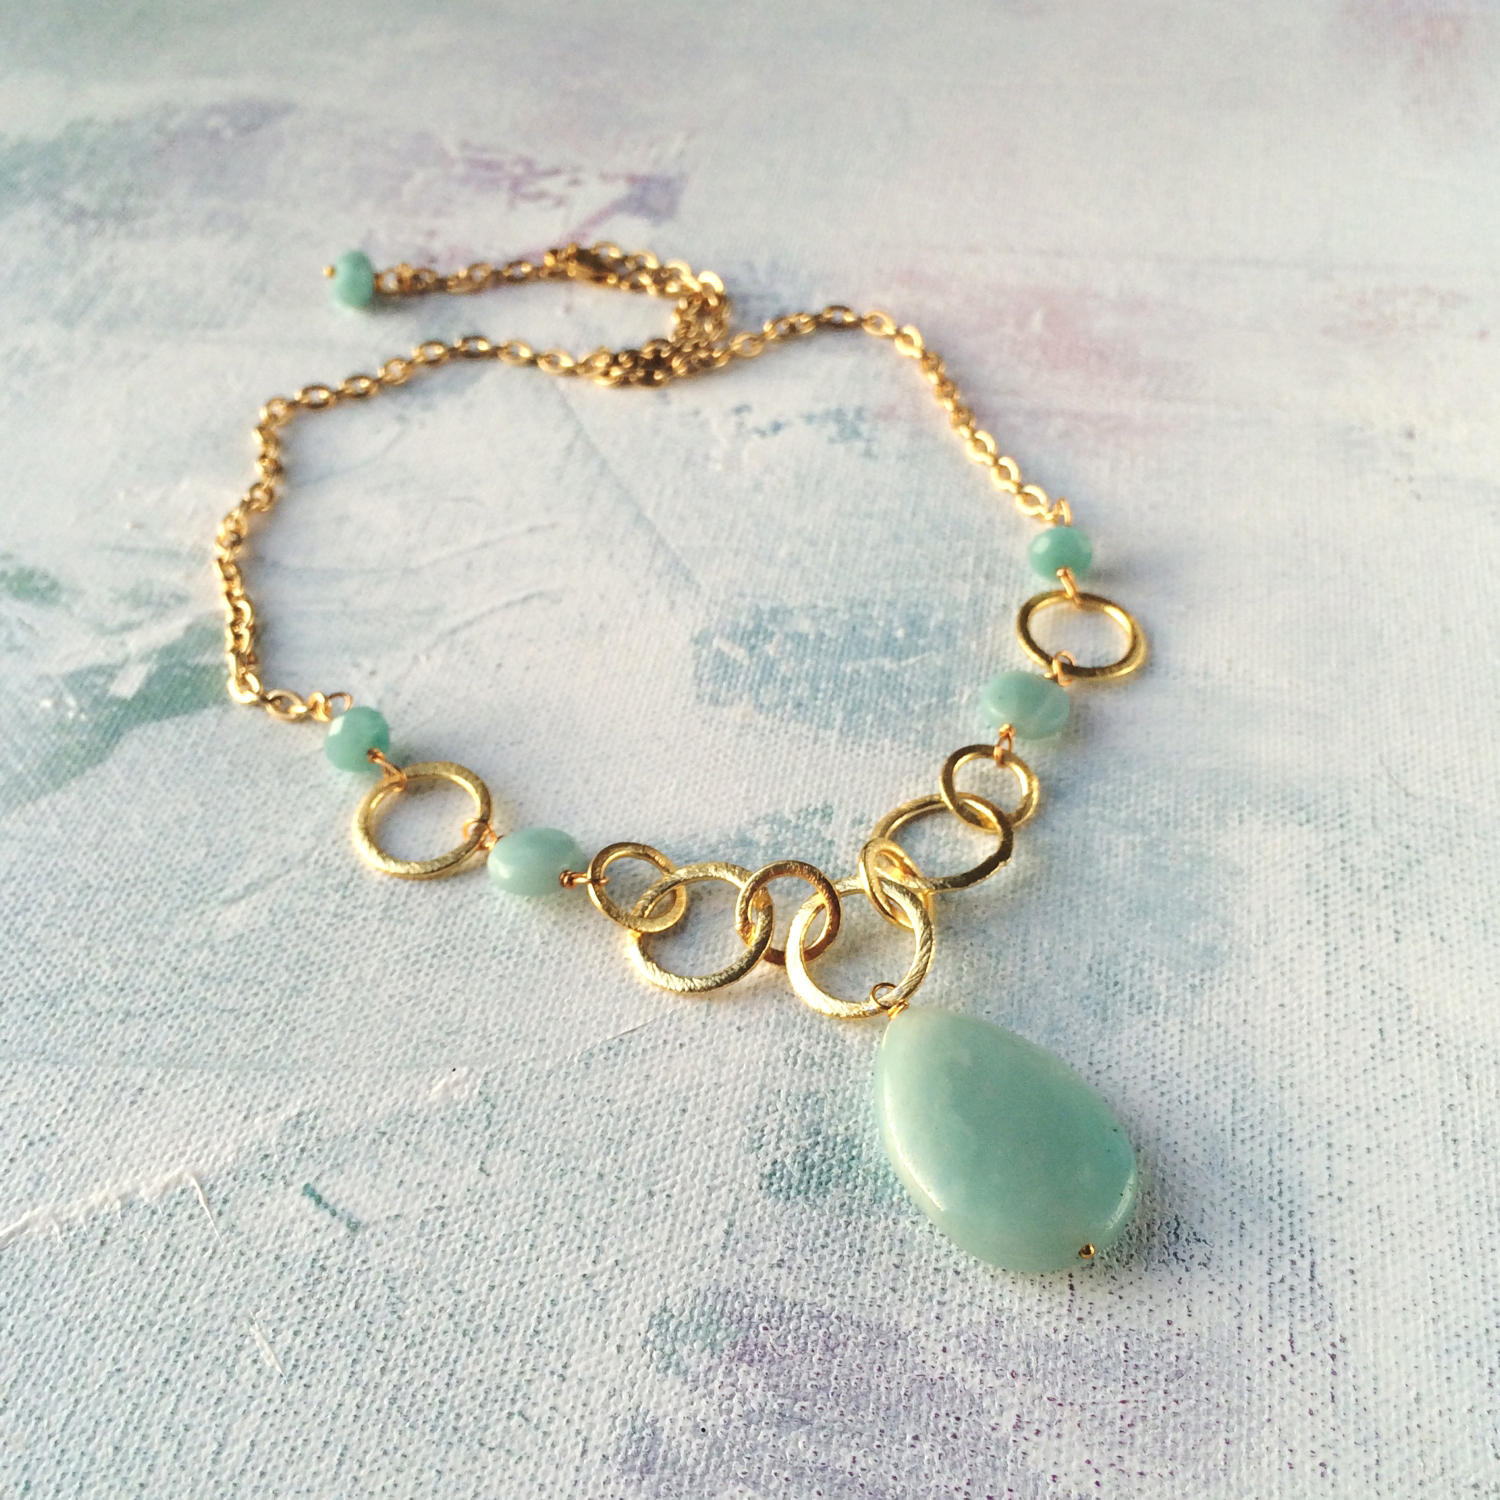 Polly necklace amazonite/gold